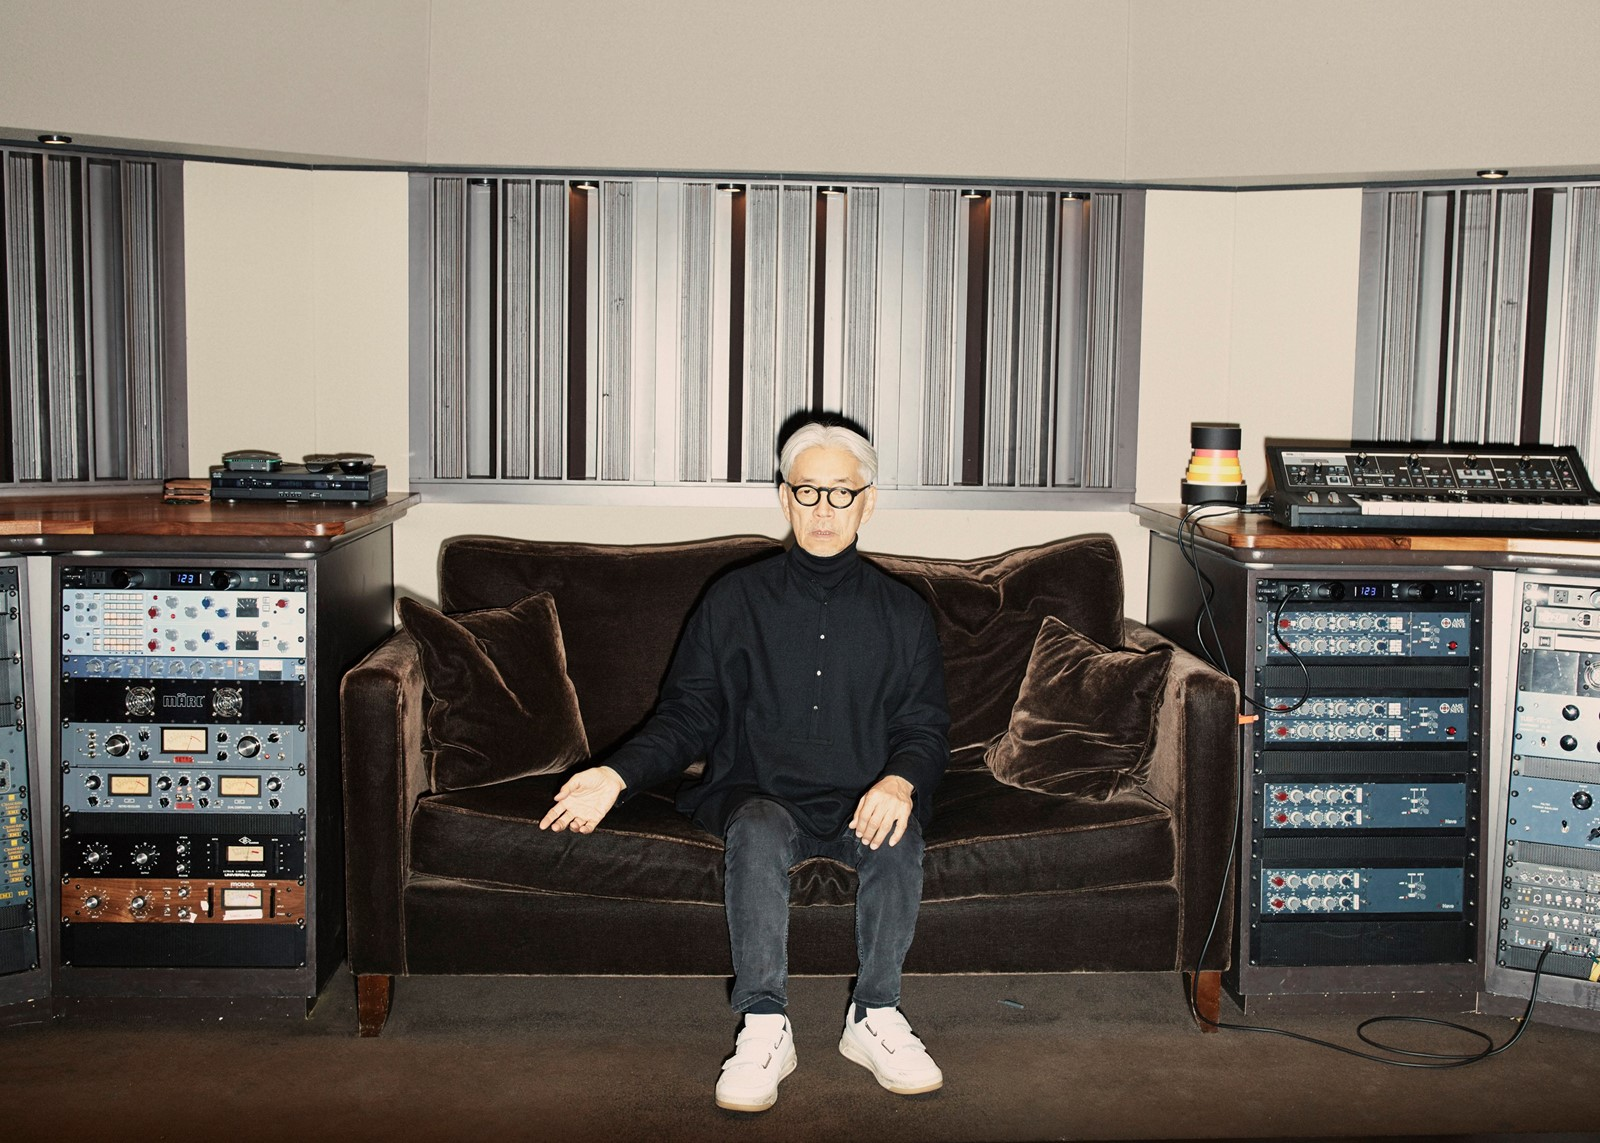 Ryuichi Sakamoto wants to forget the past and feel the